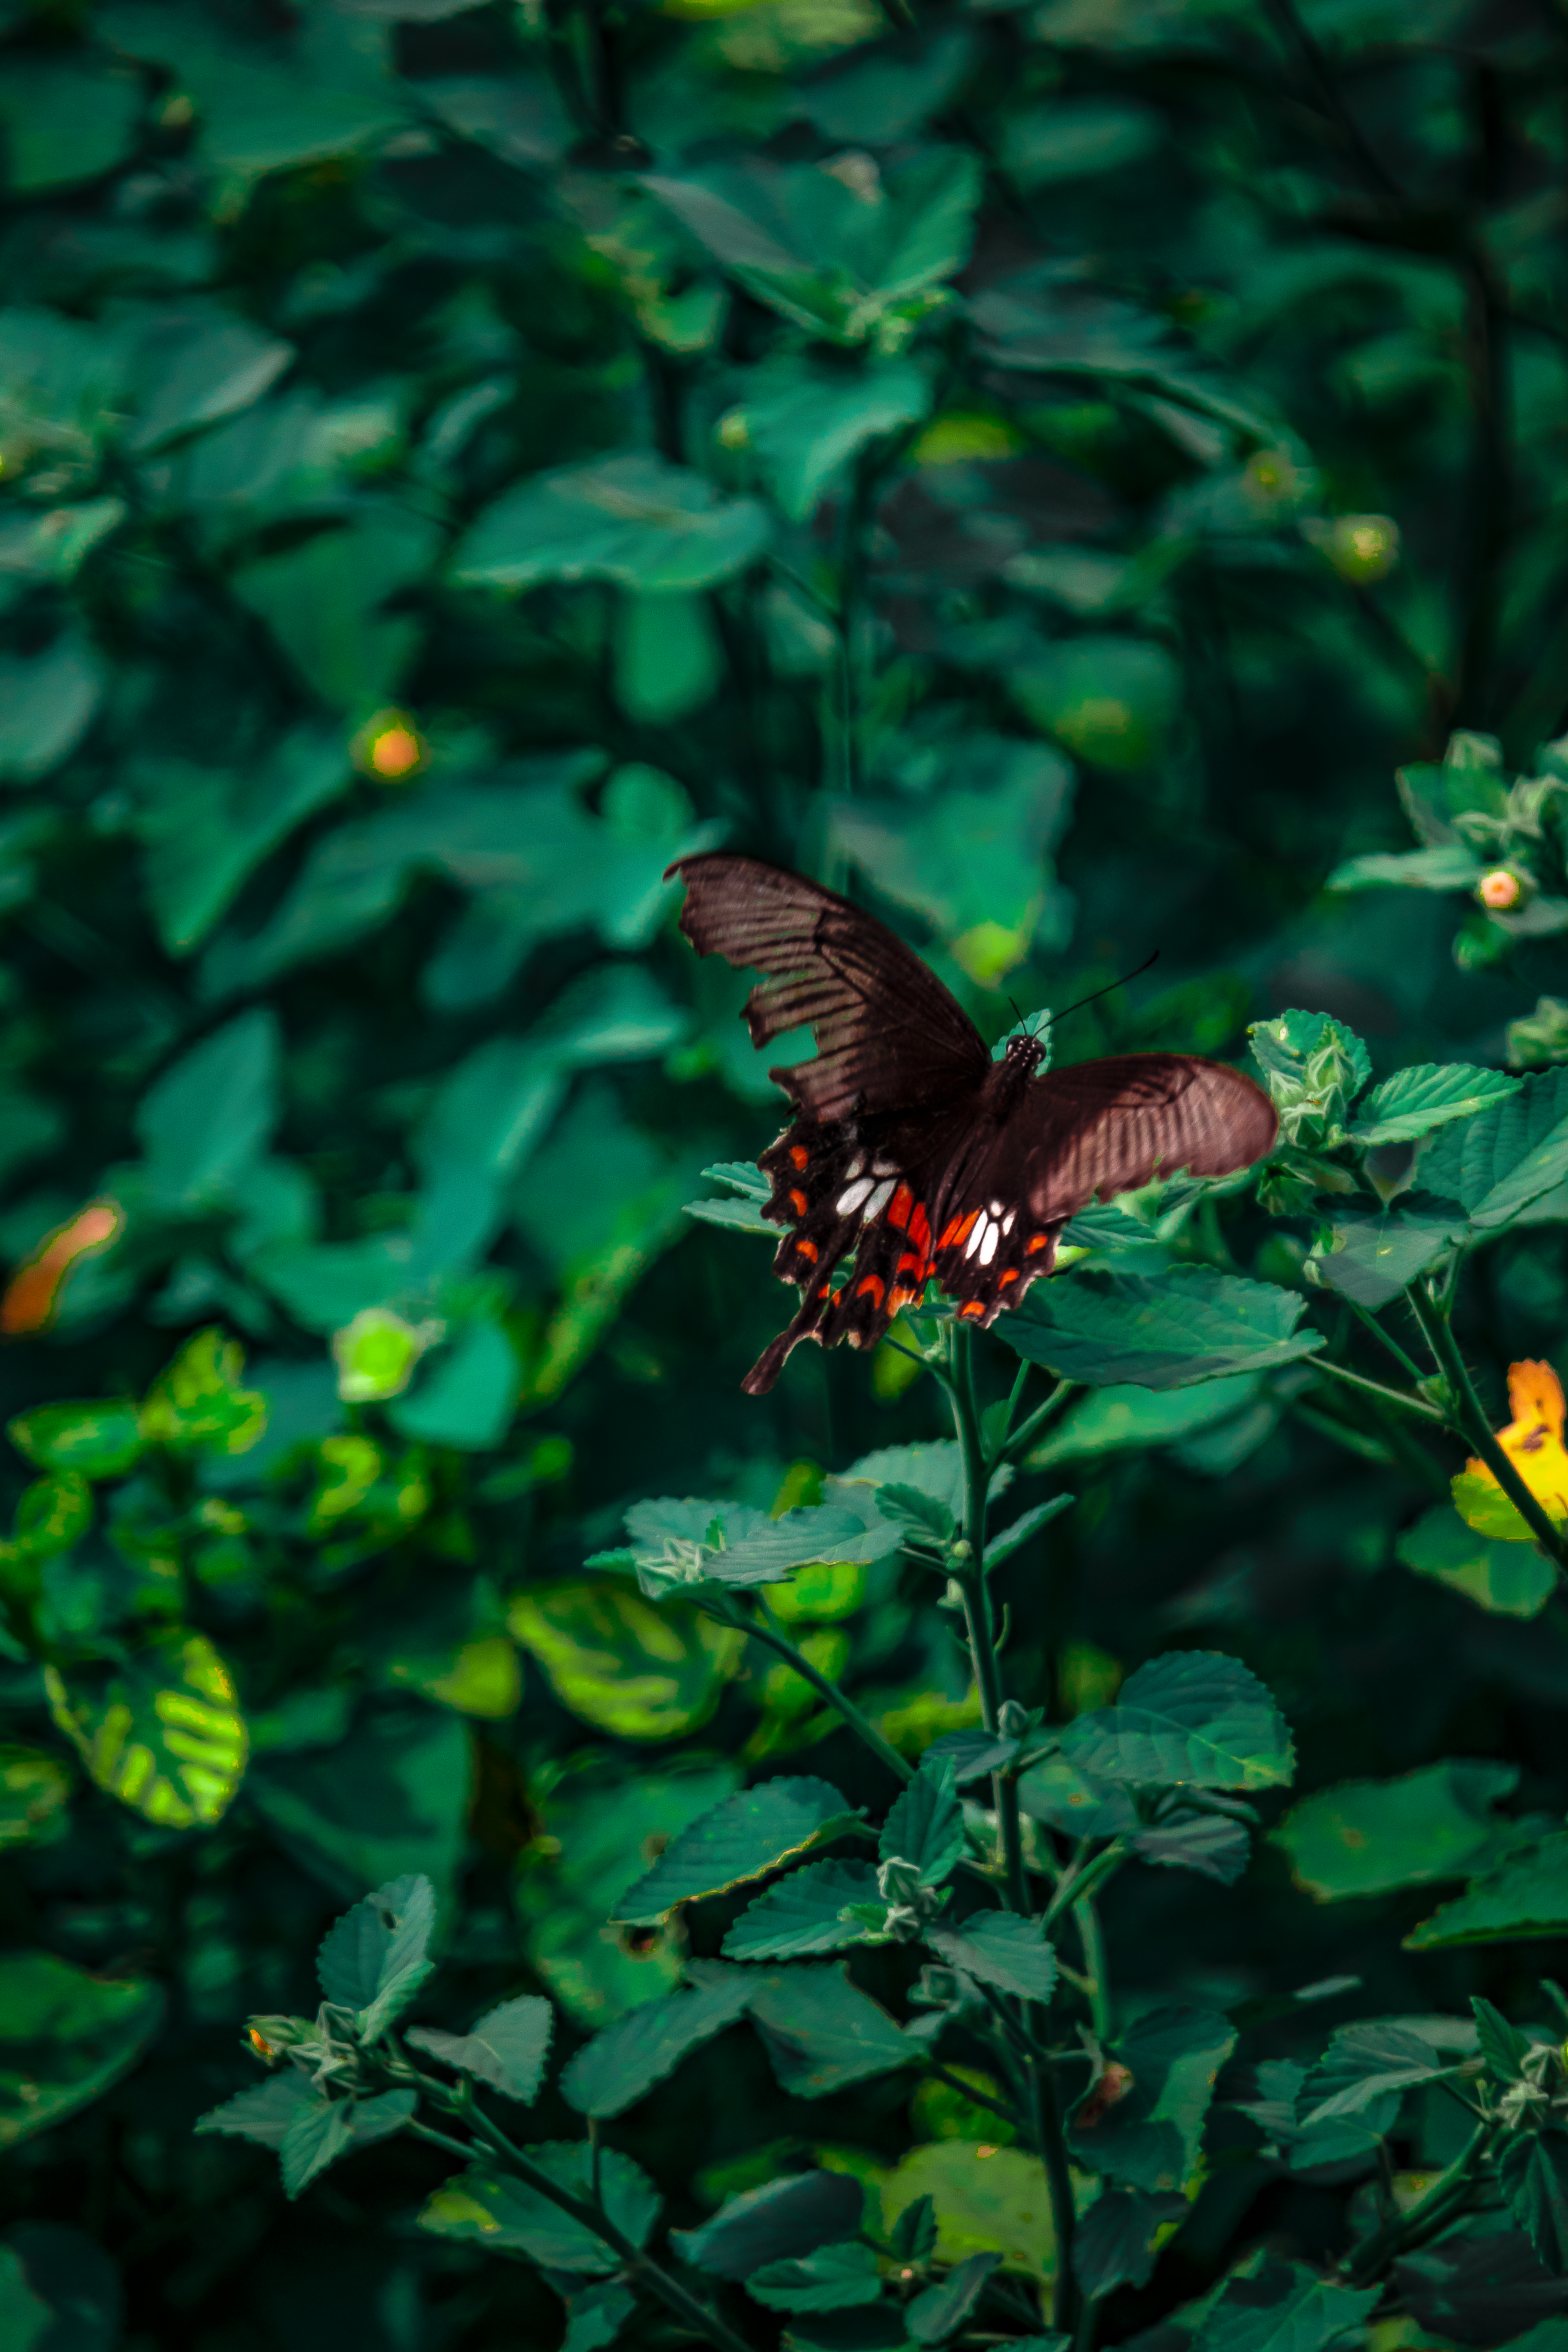 black butterfly on a plant